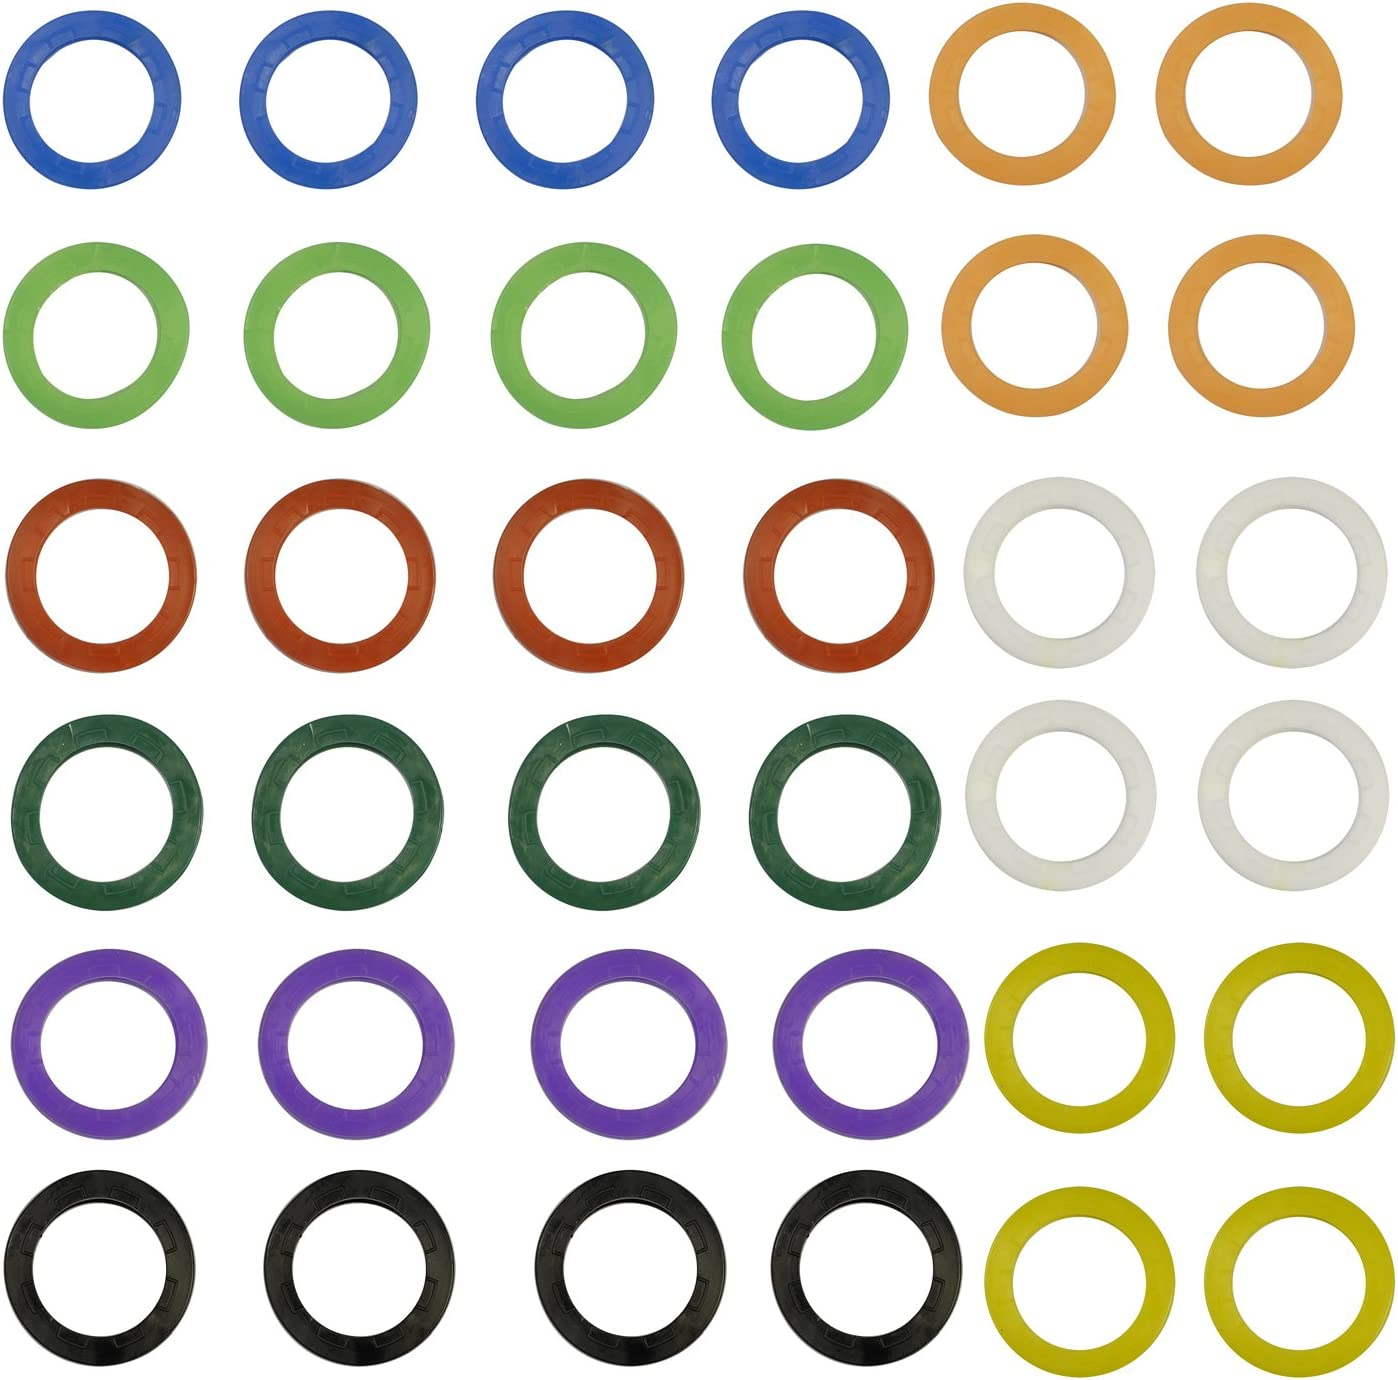 8 Colori Assortiti Key Identifier Covers Tag 32 Pack Uniclife Chiave cap Covers Anelli